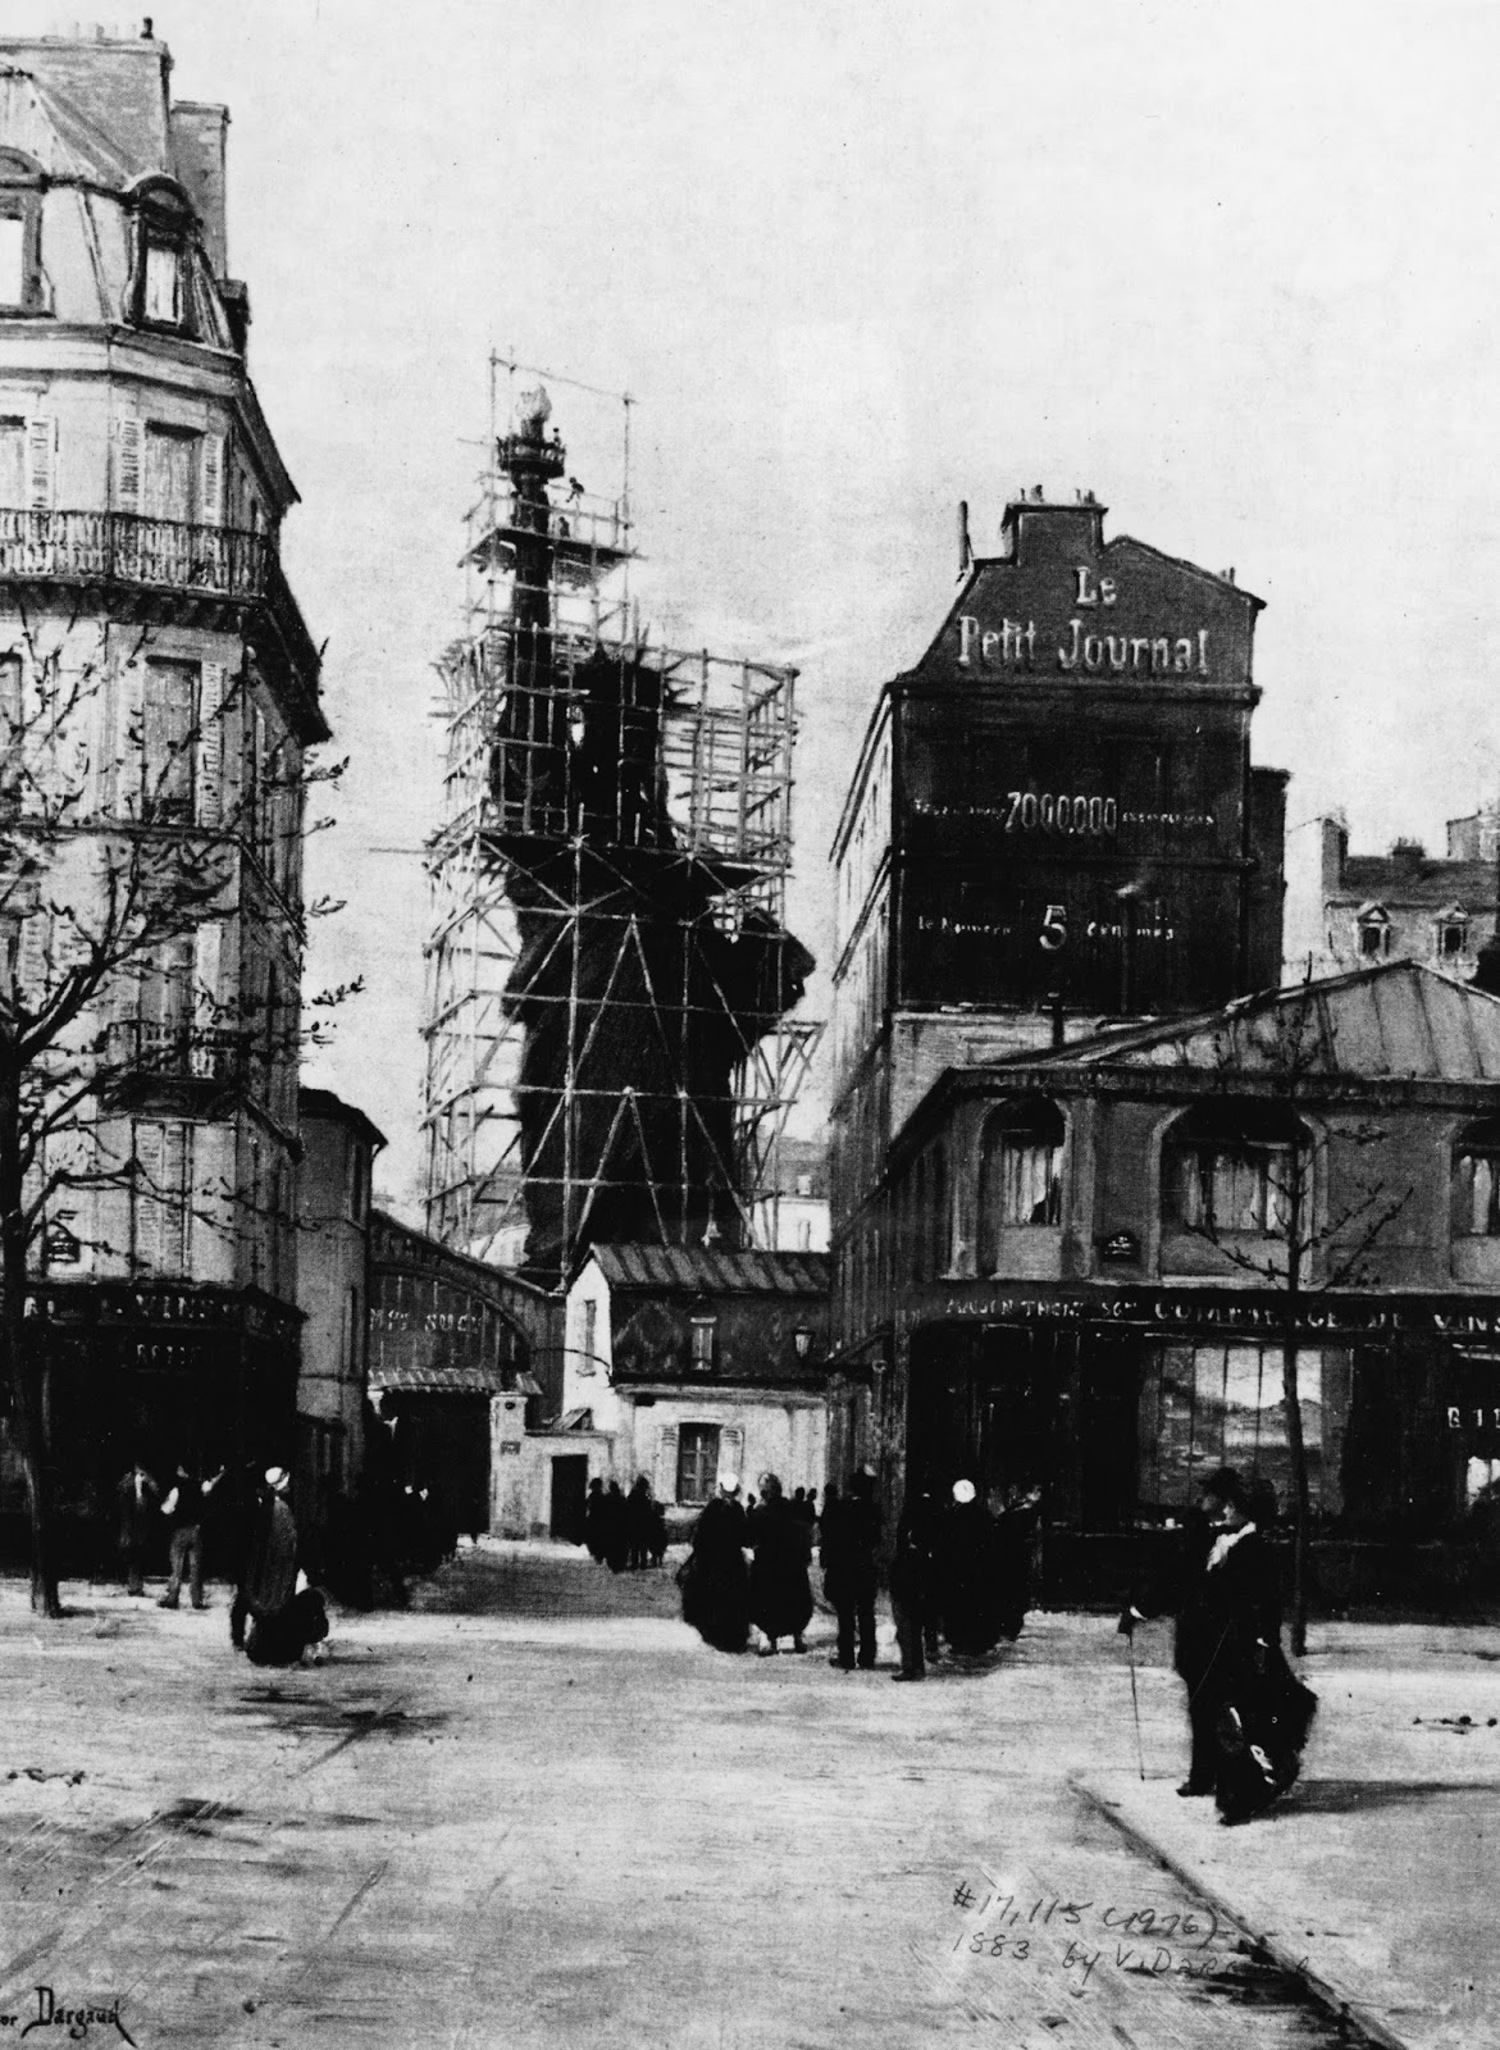 The Statue of Liberty enclosed by scaffolding, while under construction, seen from the Rue de Chazelles, in Paris circa 1884.